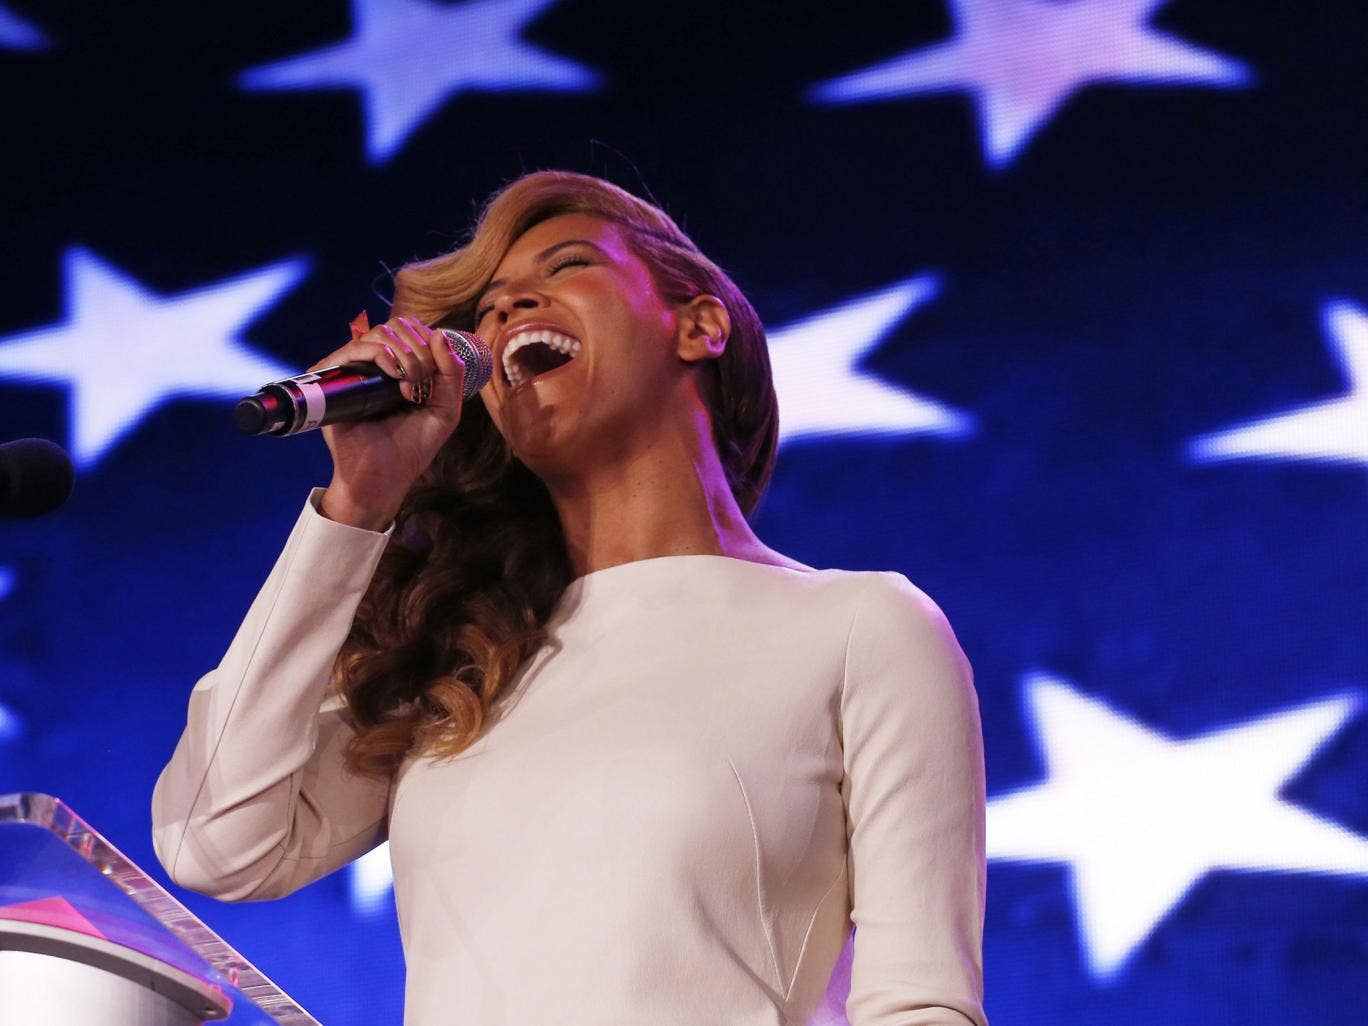 Fresh from lip-syncing at the President's inaugration, Beyonce will take to the stage for the Super Bowl's half-time show